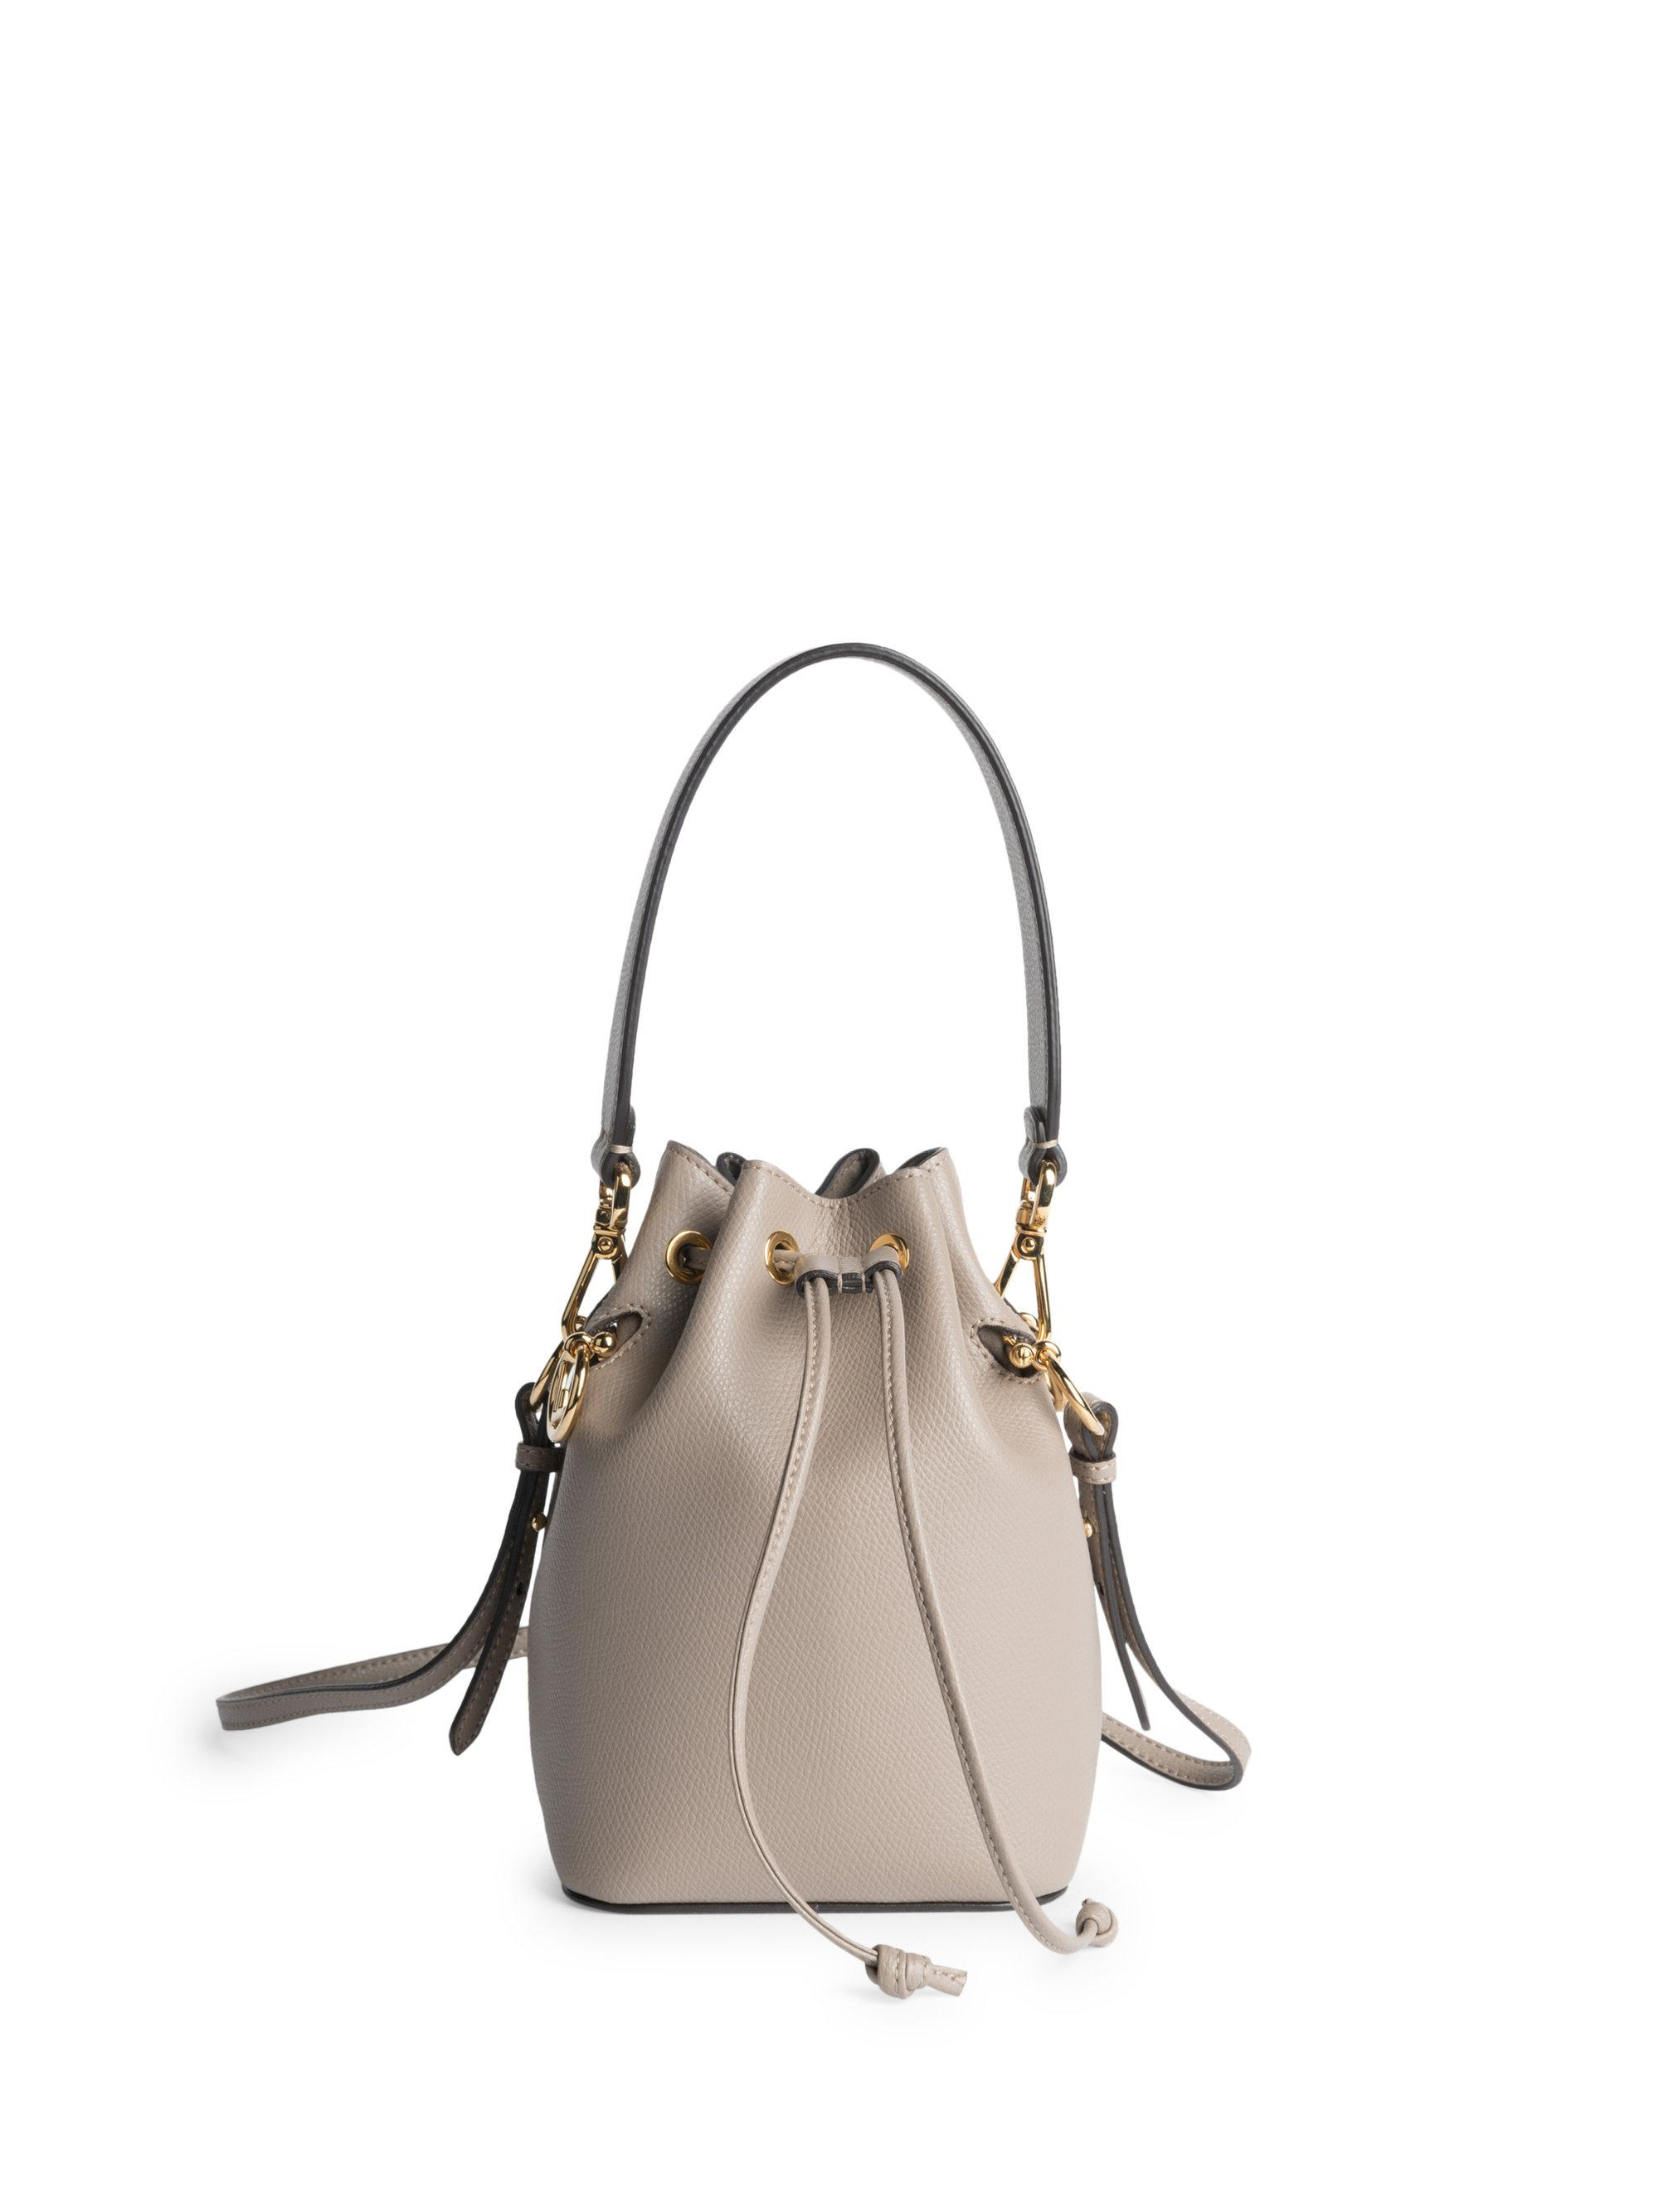 351018b6c5f9 Fendi Women s Mon Tresor Leather Bucket Bag - Peoni - Lyst